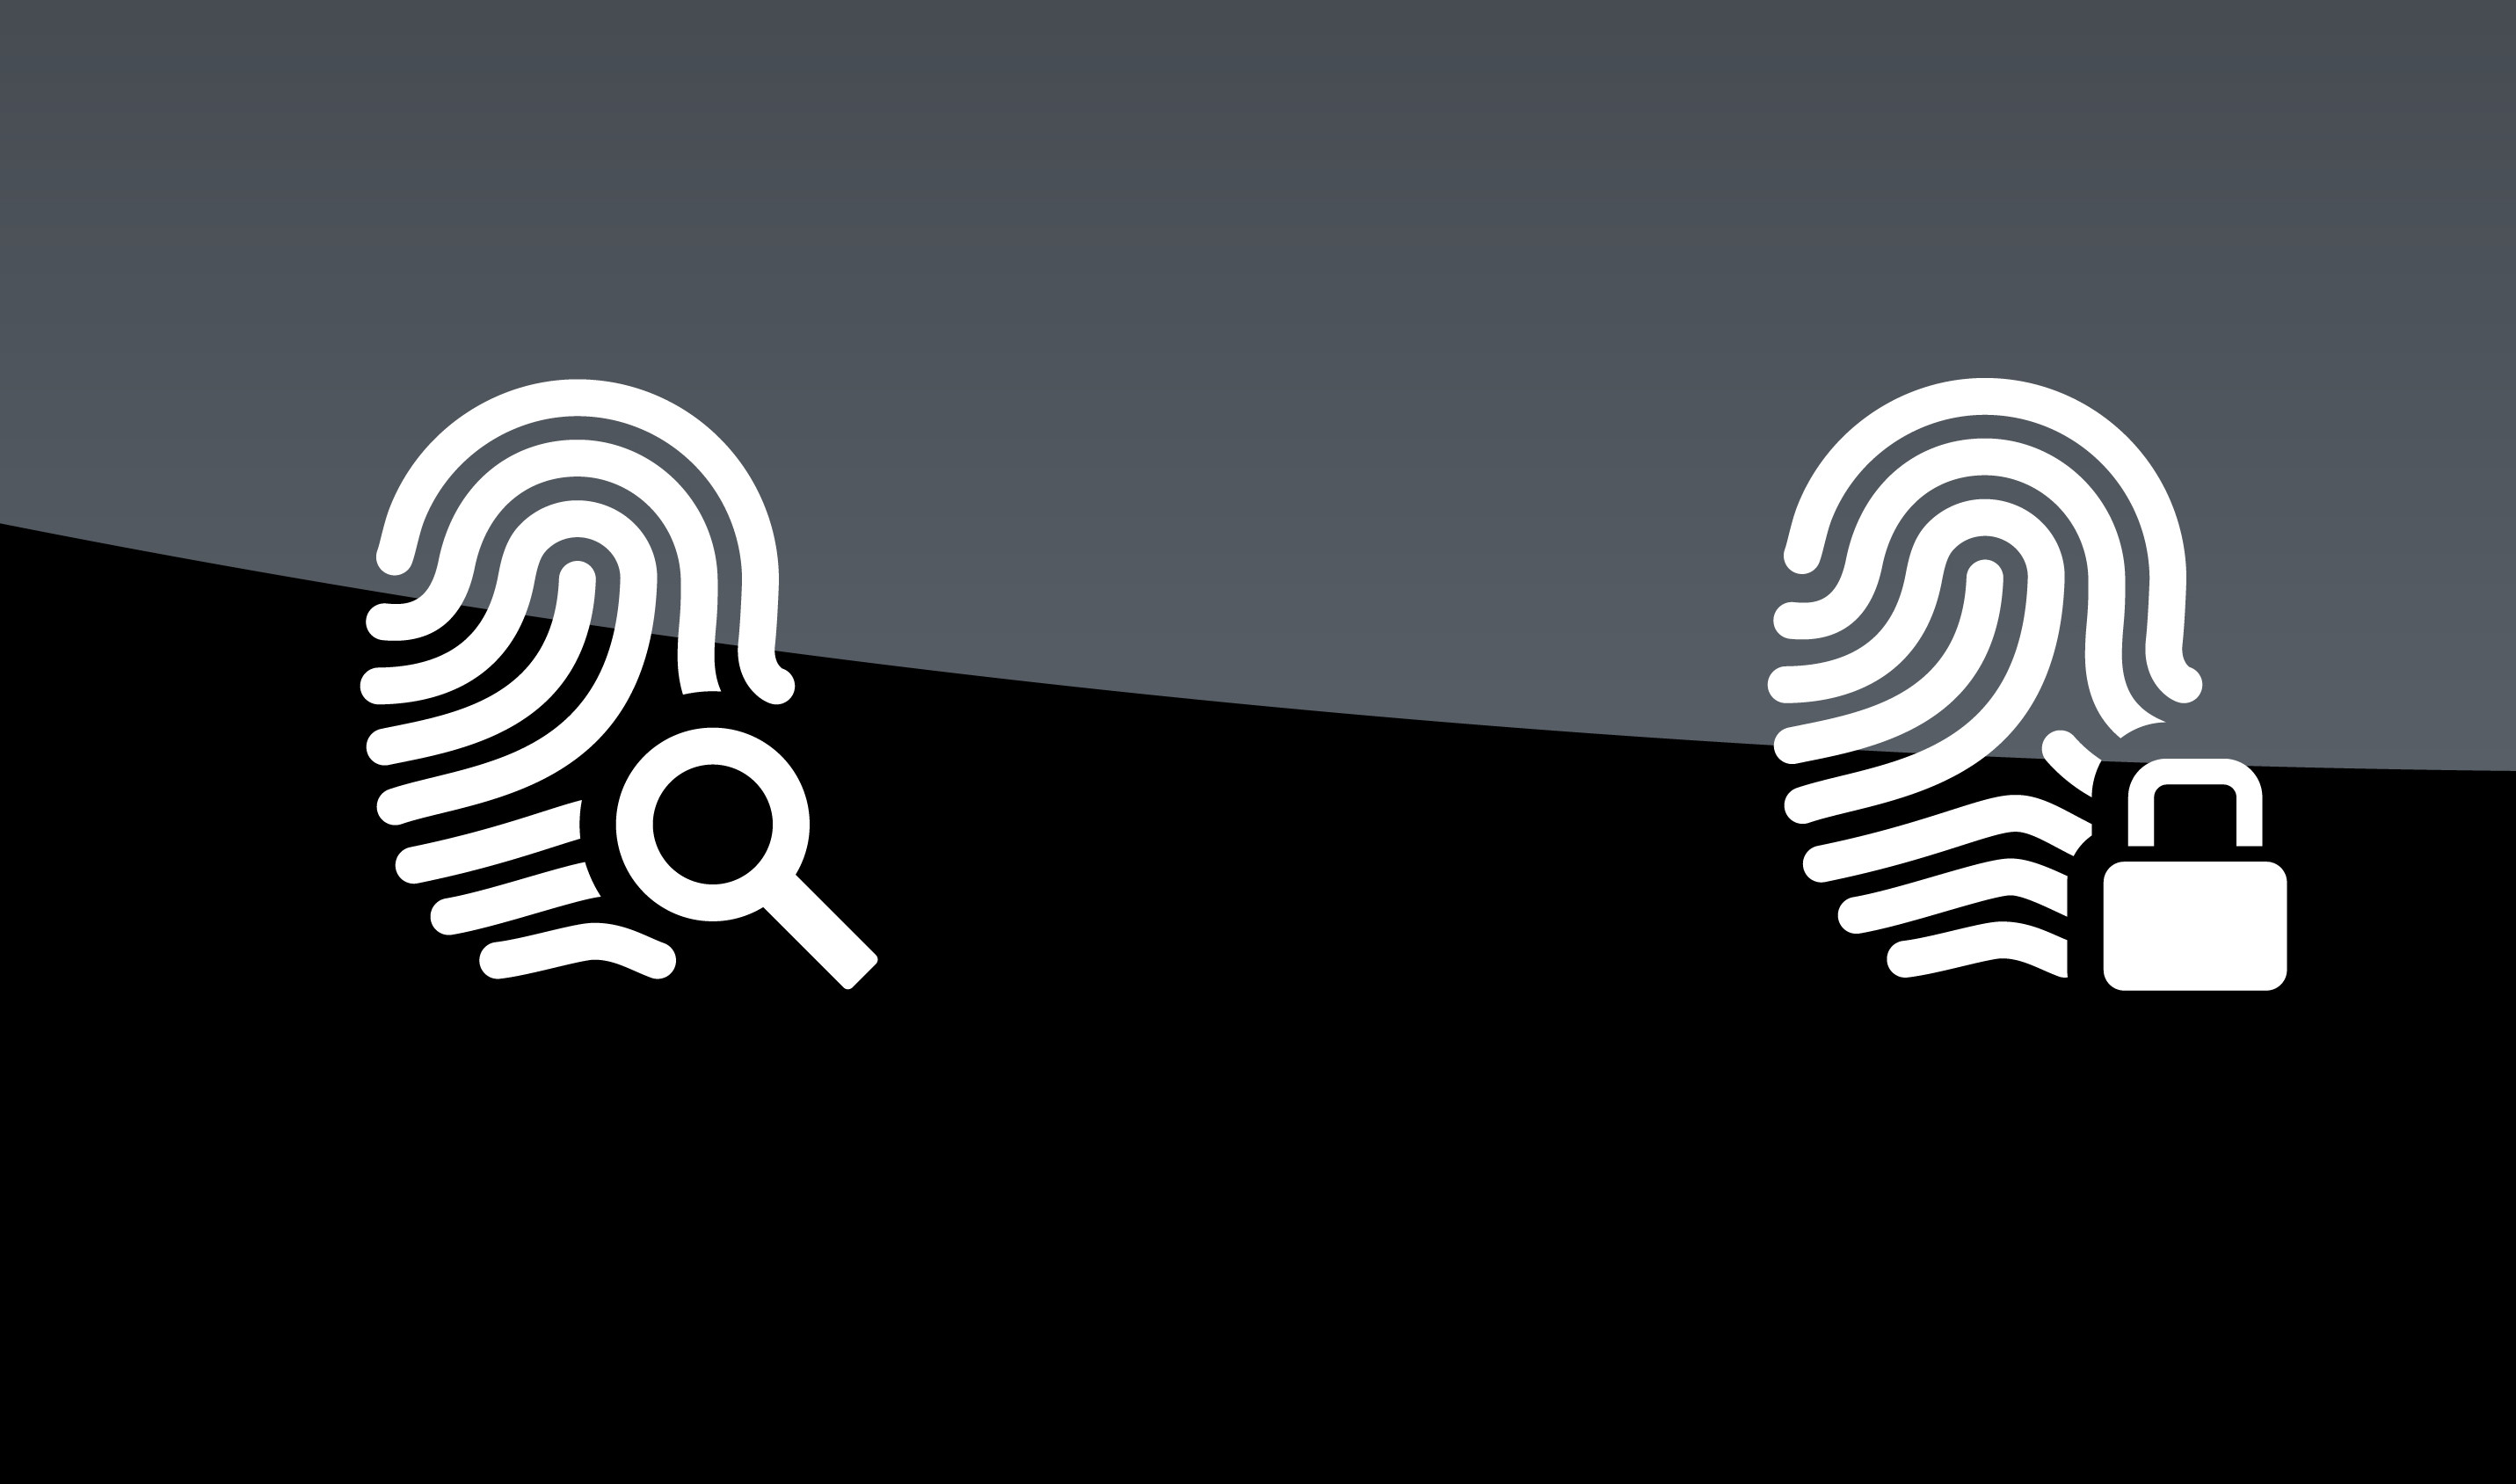 Finger scanner icons on black background. Vector illustration.